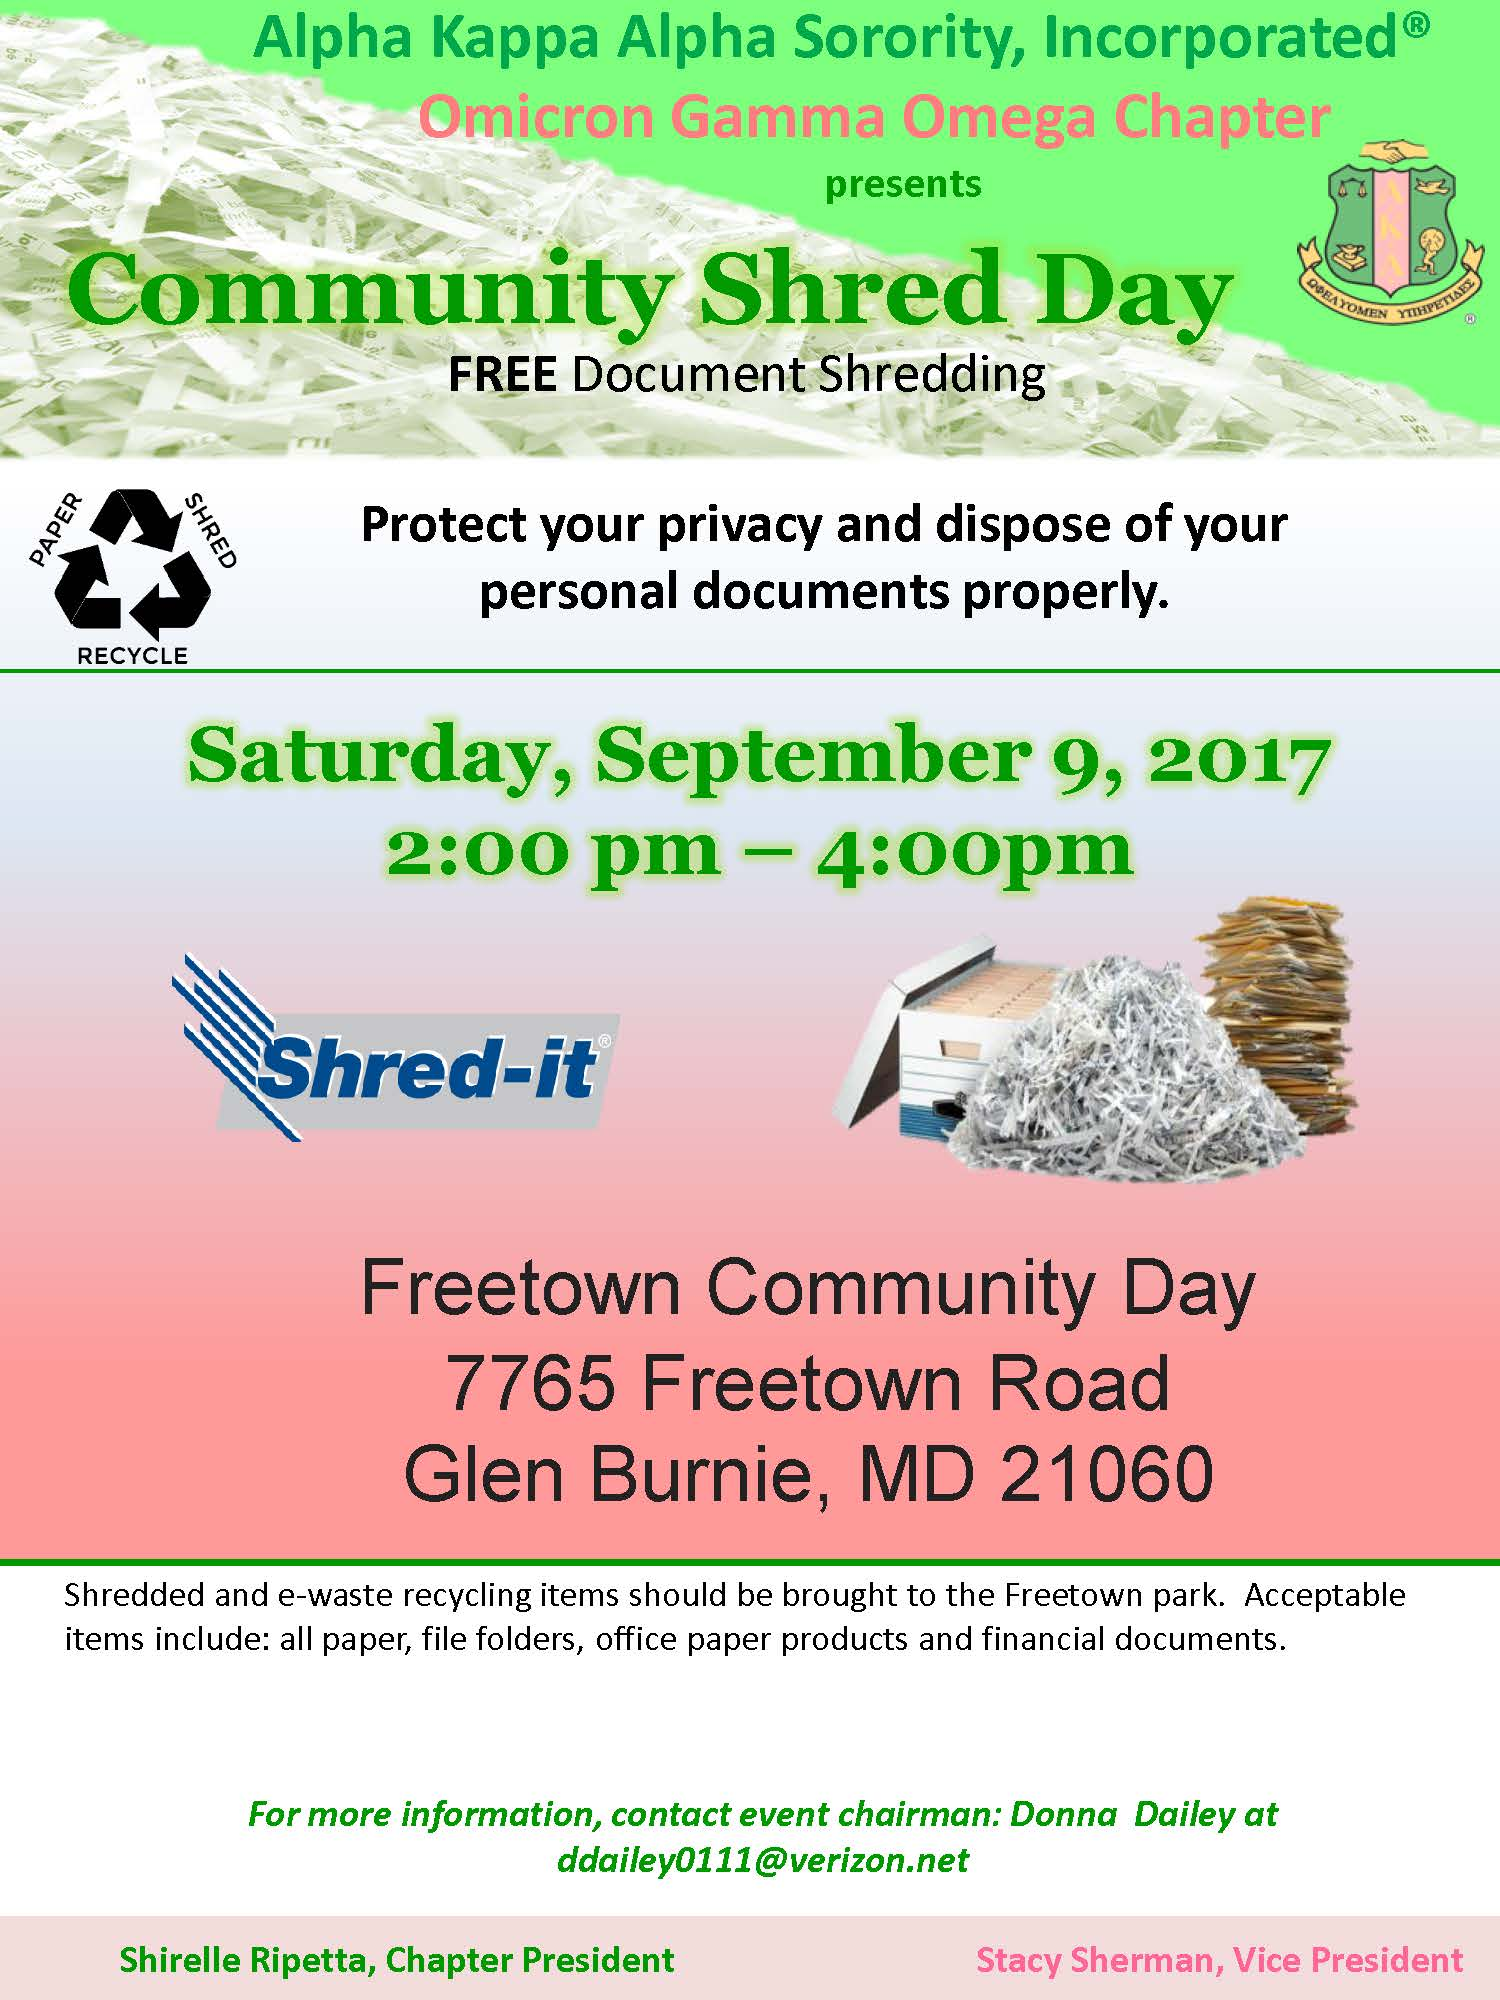 http://akaomicrongammaomega.org/wp-content/uploads/2016/01/2017-Community-Shred-Day-Flyer.jpg